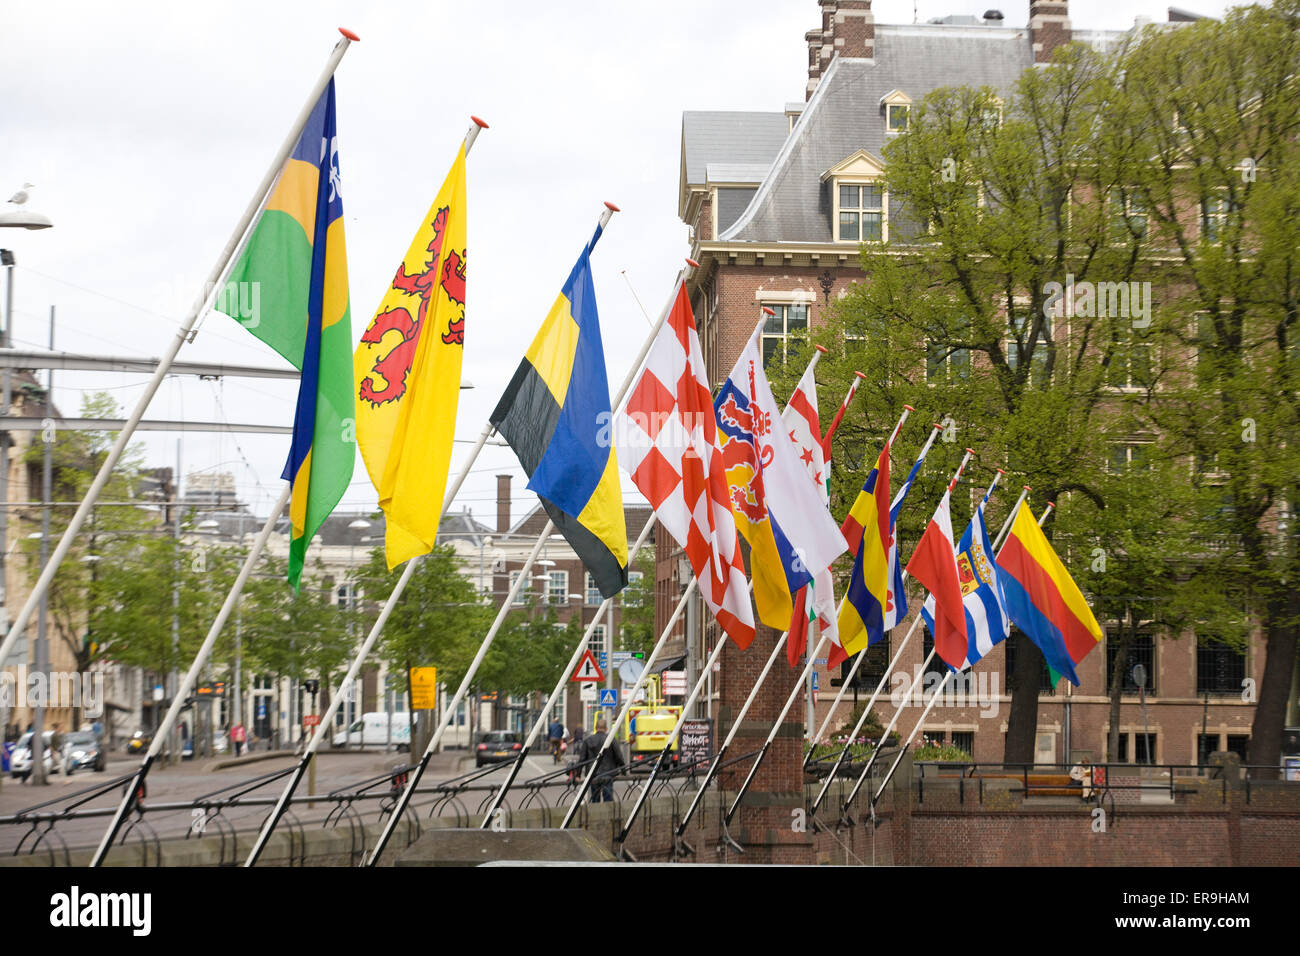 European Union flags flying at the Binnenhof building in The Hague Netherlands - Stock Image